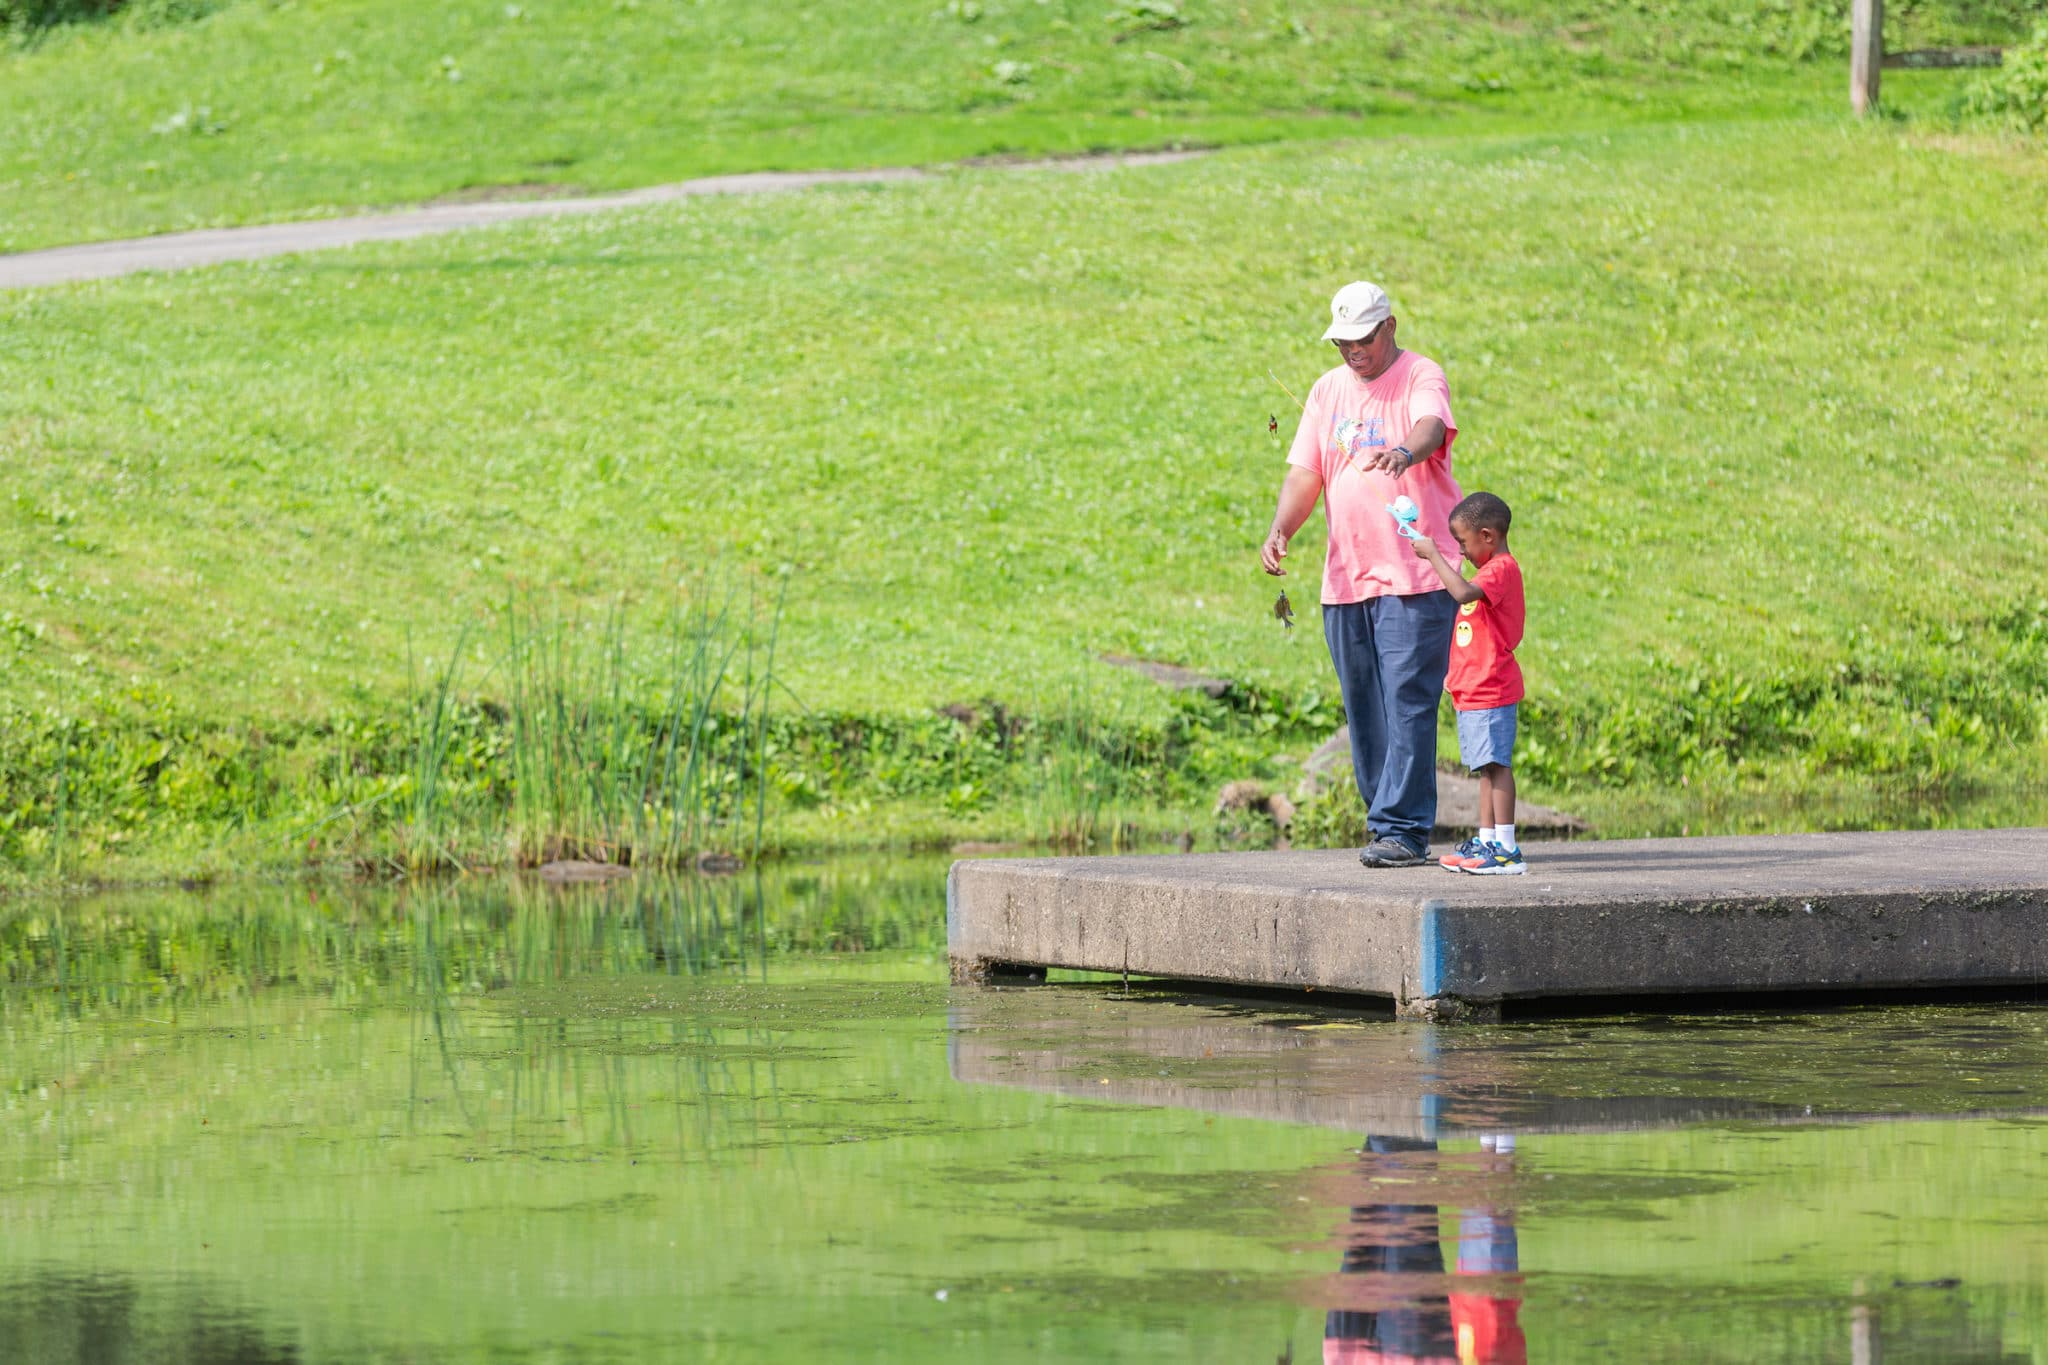 A man and child overlooking water